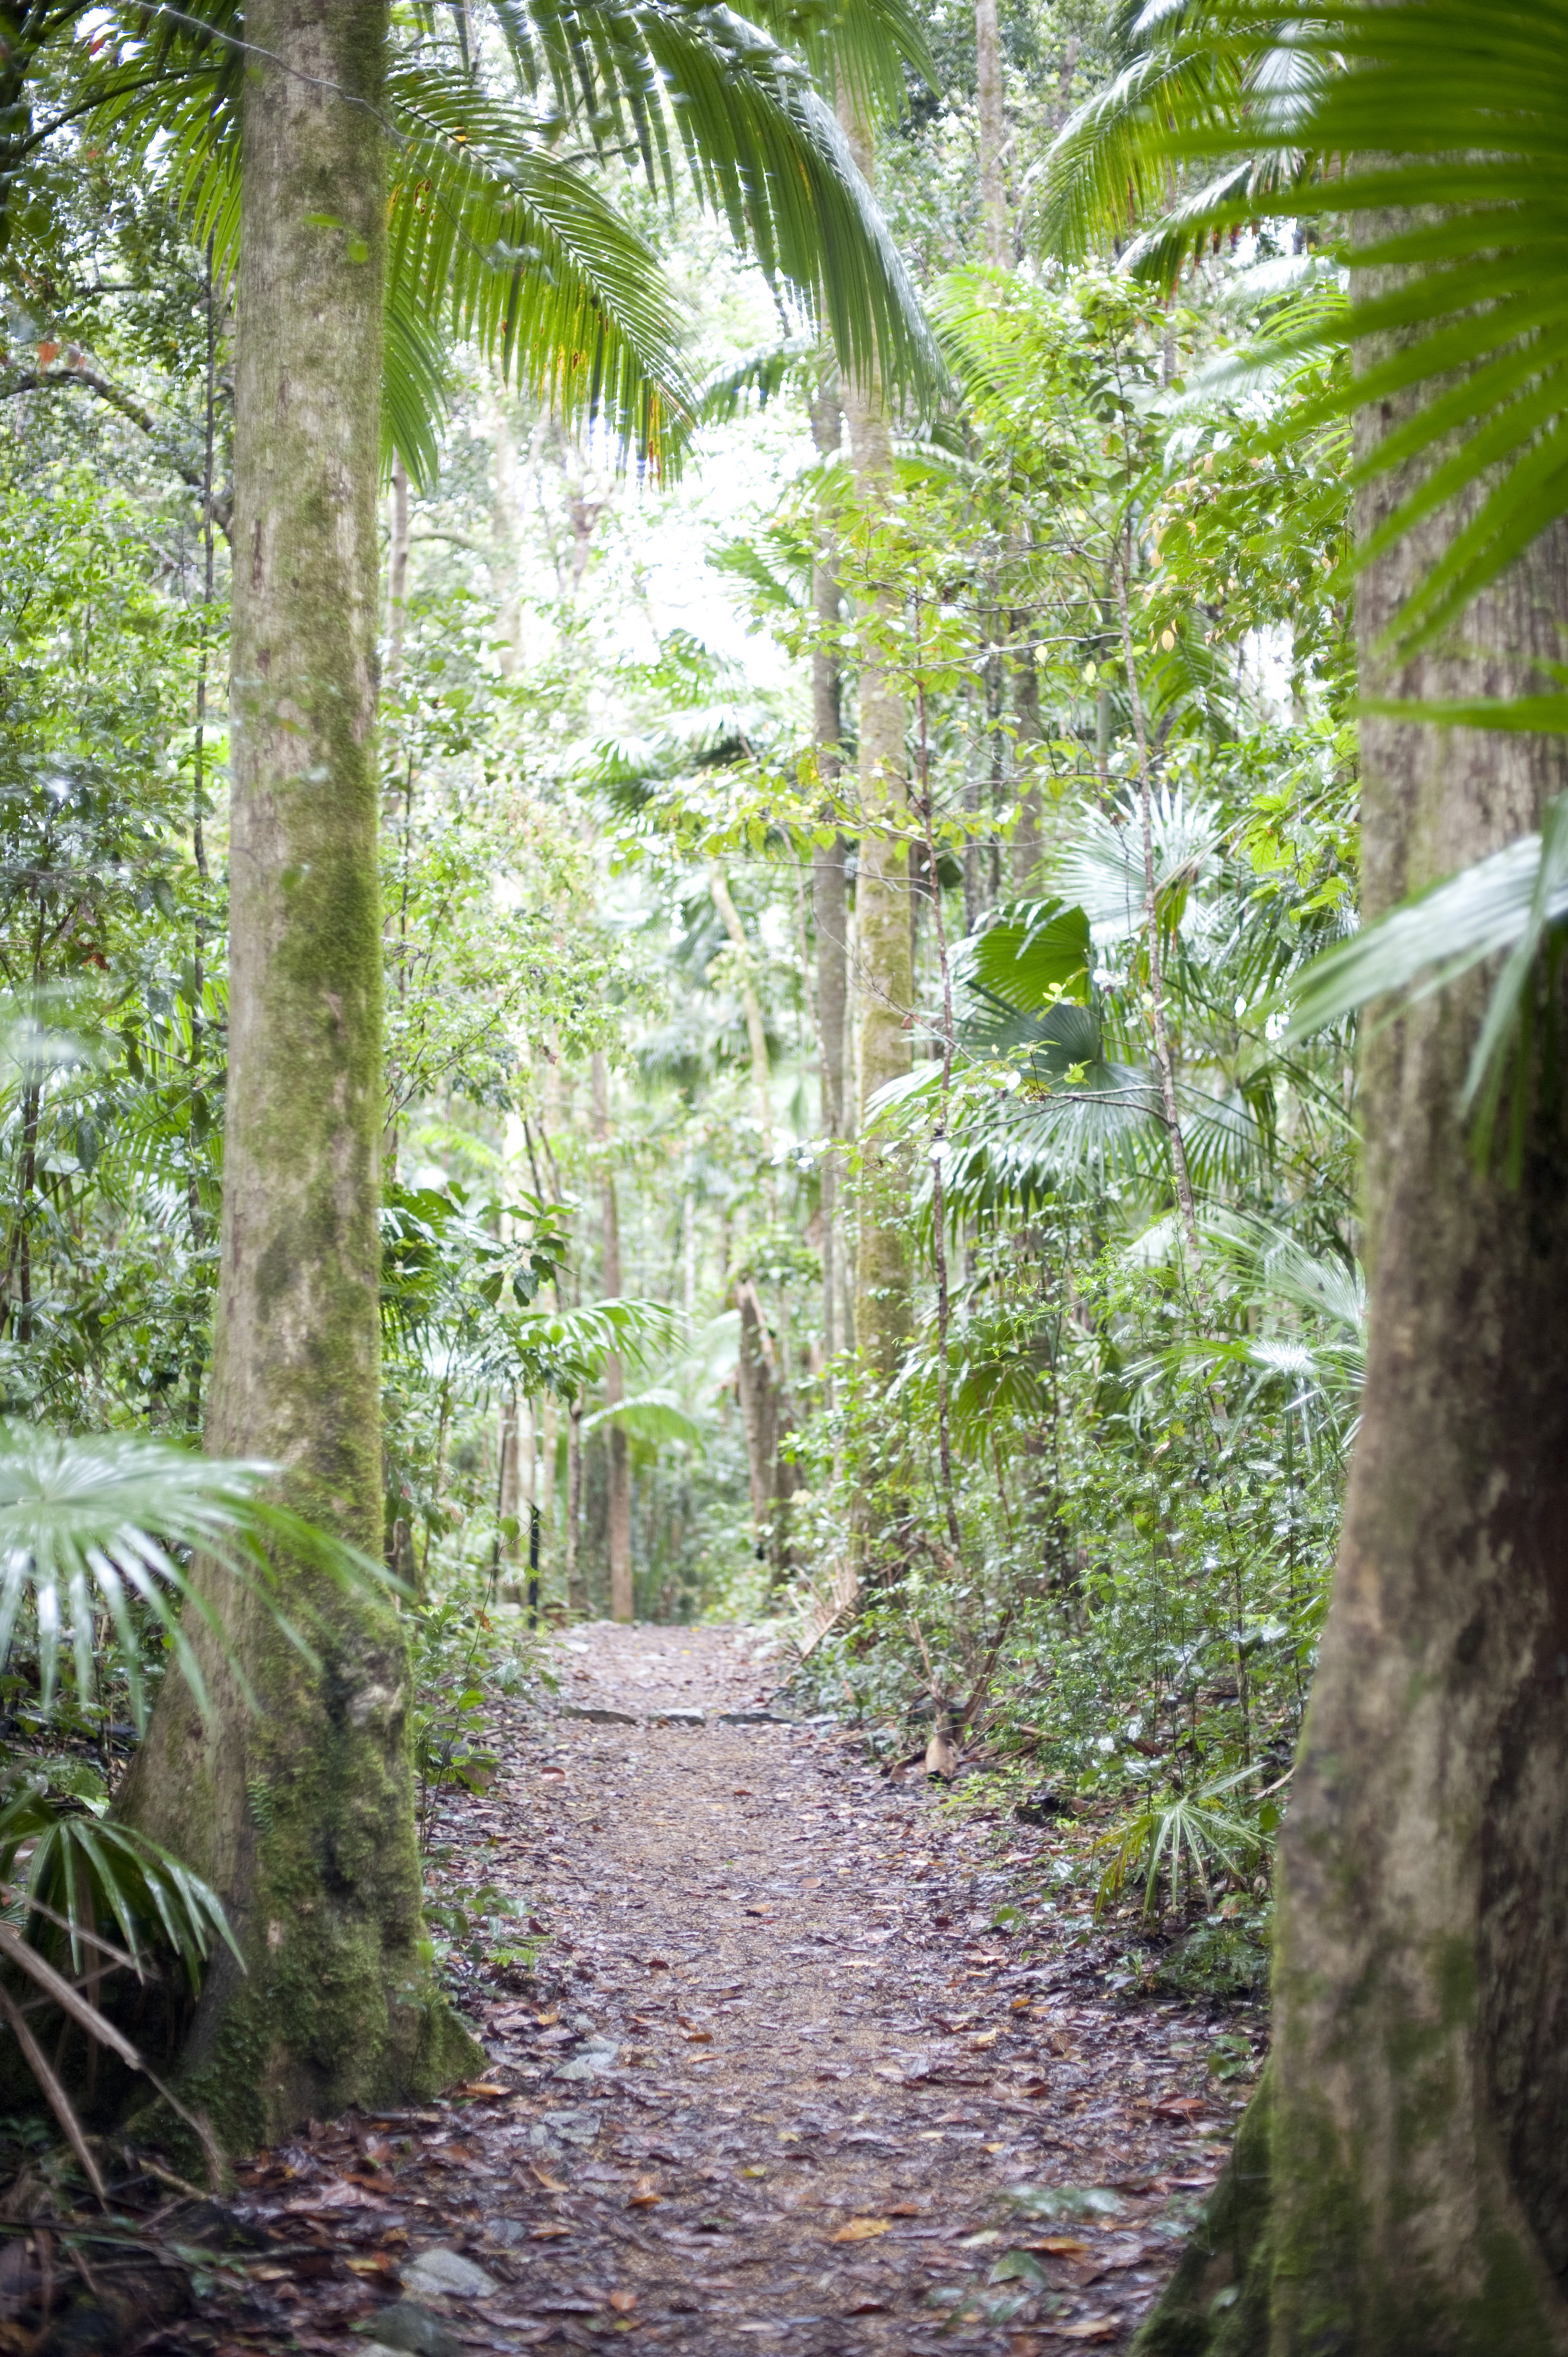 Deserted rainforest path leading between beautiful lush green tropical vegetation and palm trees